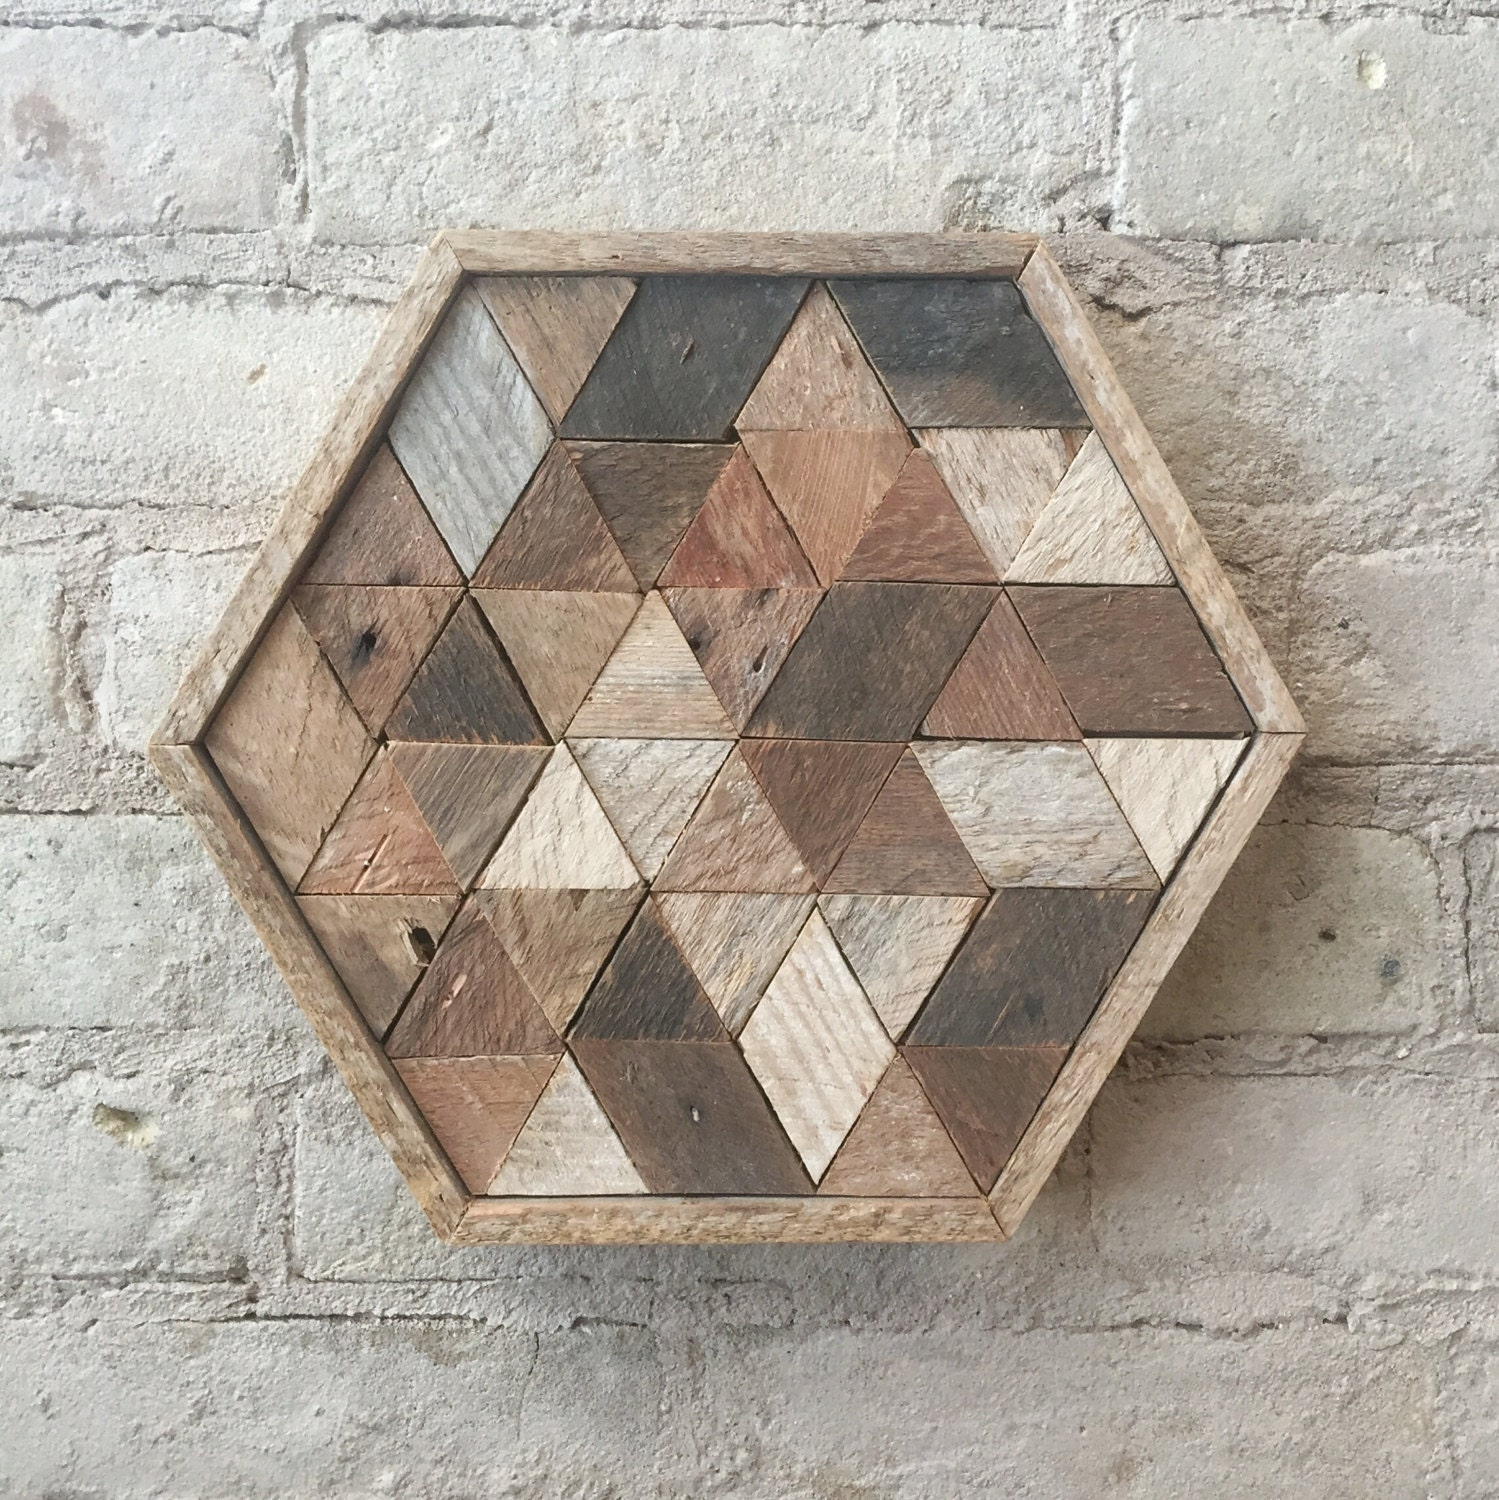 Reclaimed Wood Wall Art Decor or Table Tray Hexagon